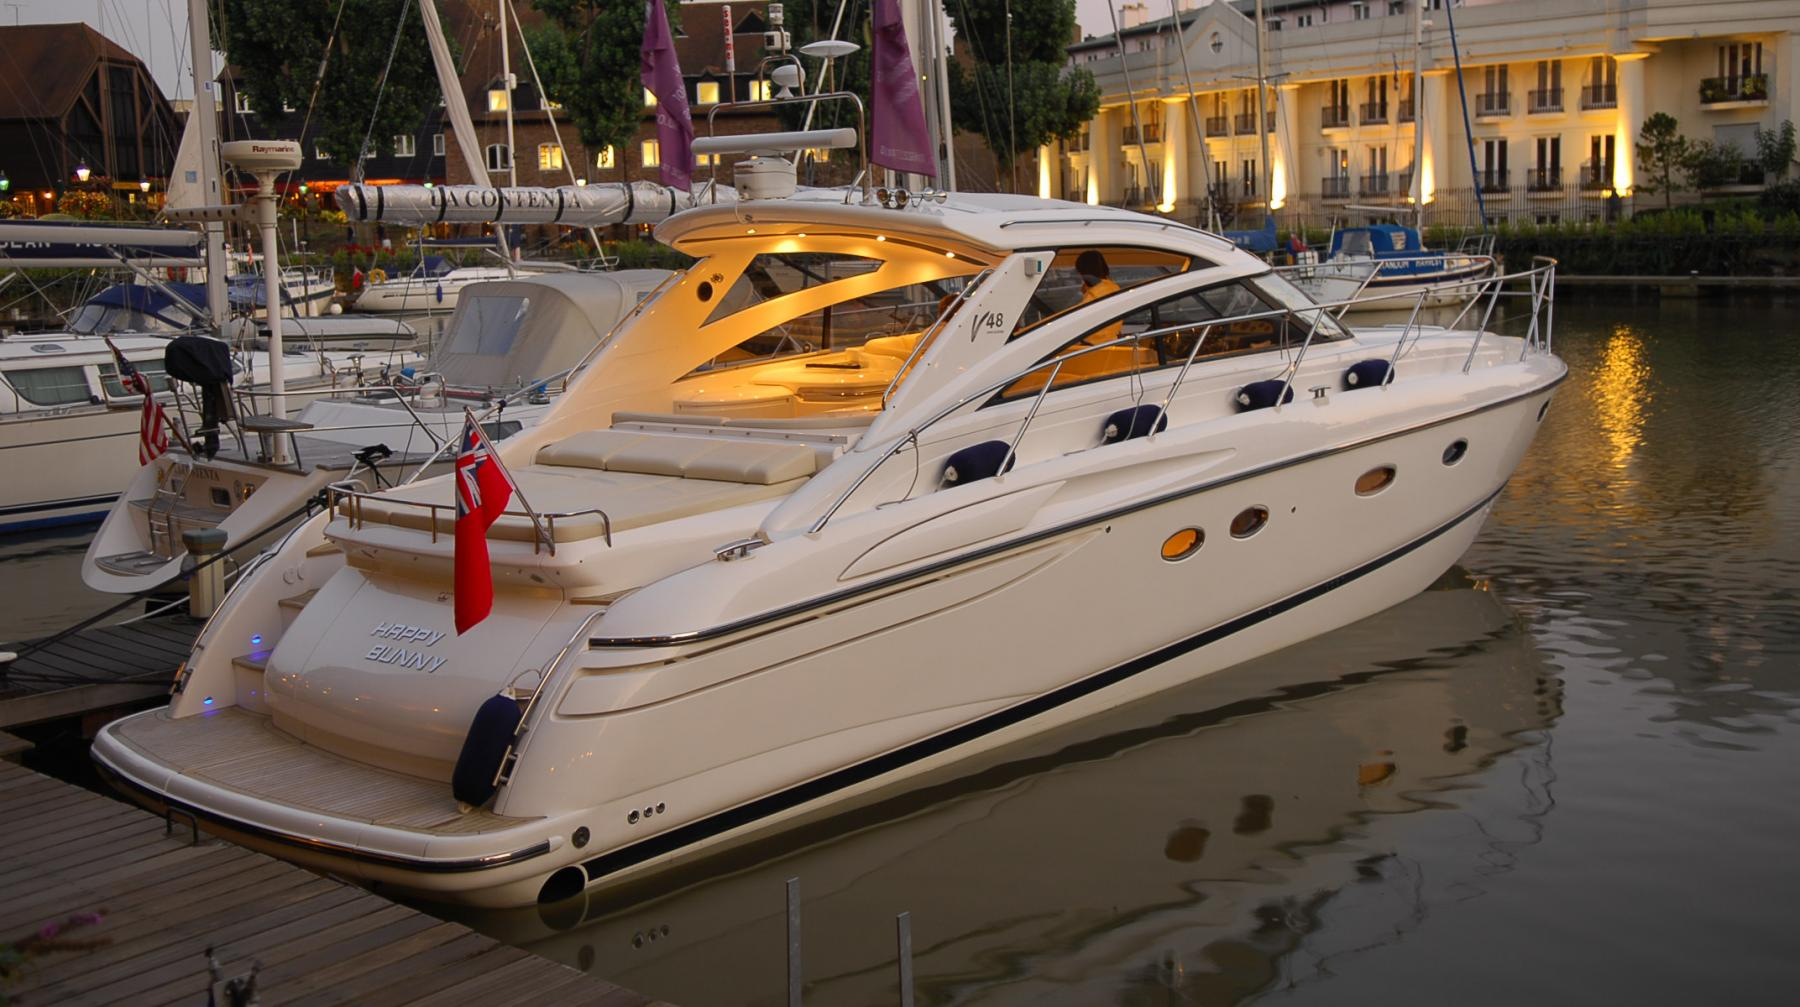 Linton Motor Yacht Charters – Private & Corporate Charters